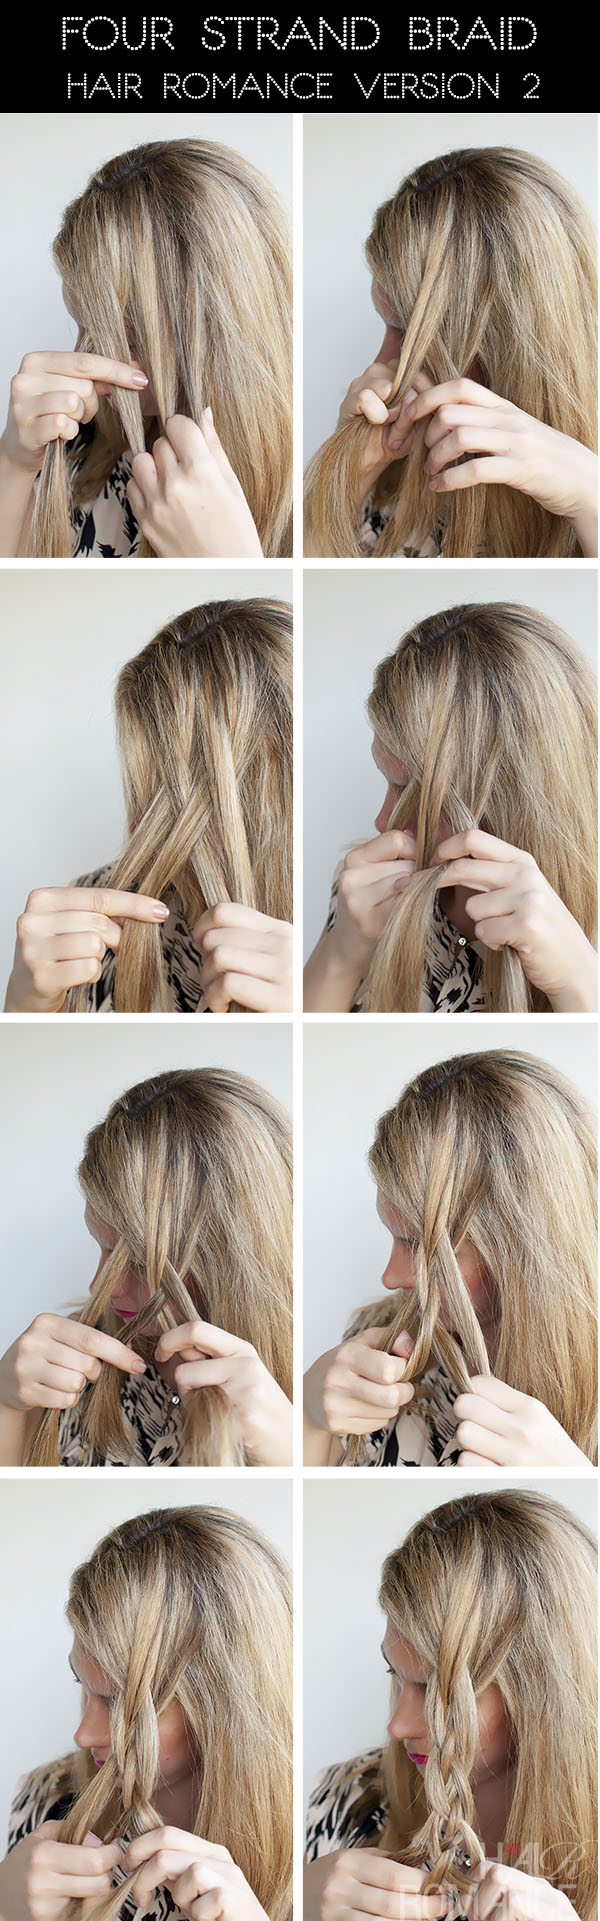 hair styles braids step by step hairstyle tutorial four strand braids and slide up 3373